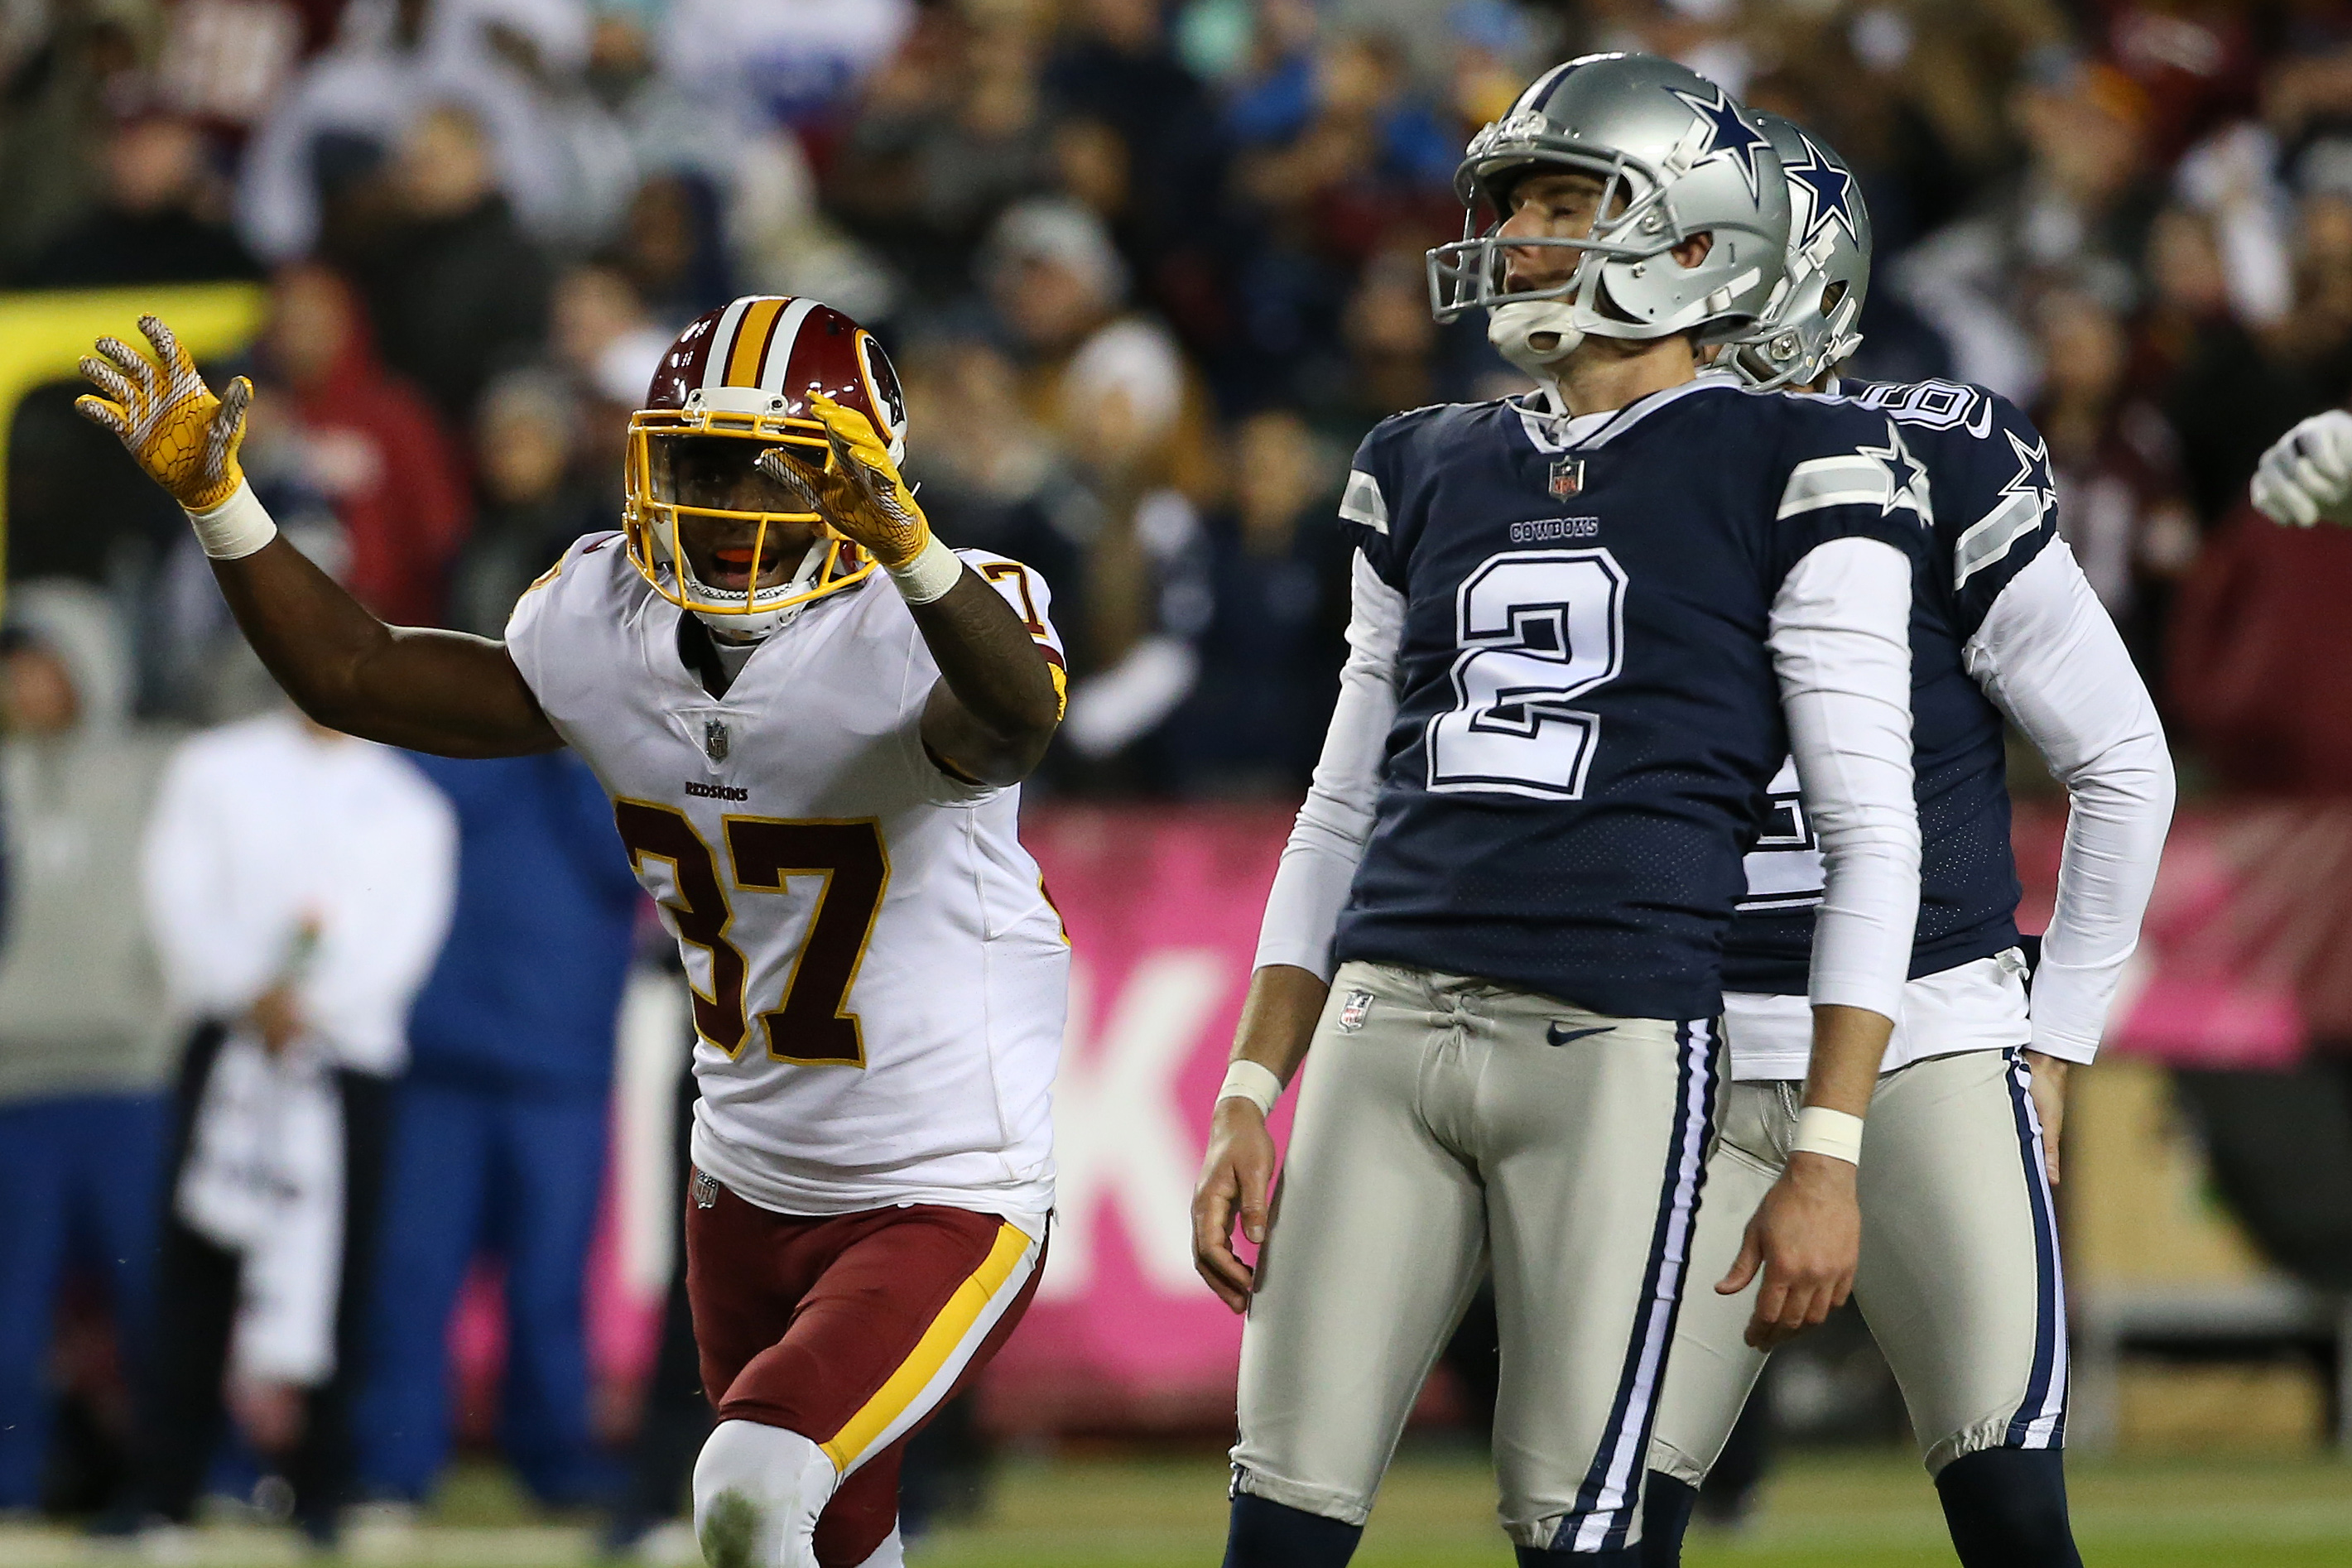 Oct 21, 2018; Landover, MD, USA; Washington Redskins defensive back Greg Stroman (37) celebrates as Dallas Cowboys kicker Brett Maher (2) watches after missing a game-tying field goal attempt on the final play of the fourth quarter at FedEx Field. Mandatory Credit: Geoff Burke-USA TODAY Sports